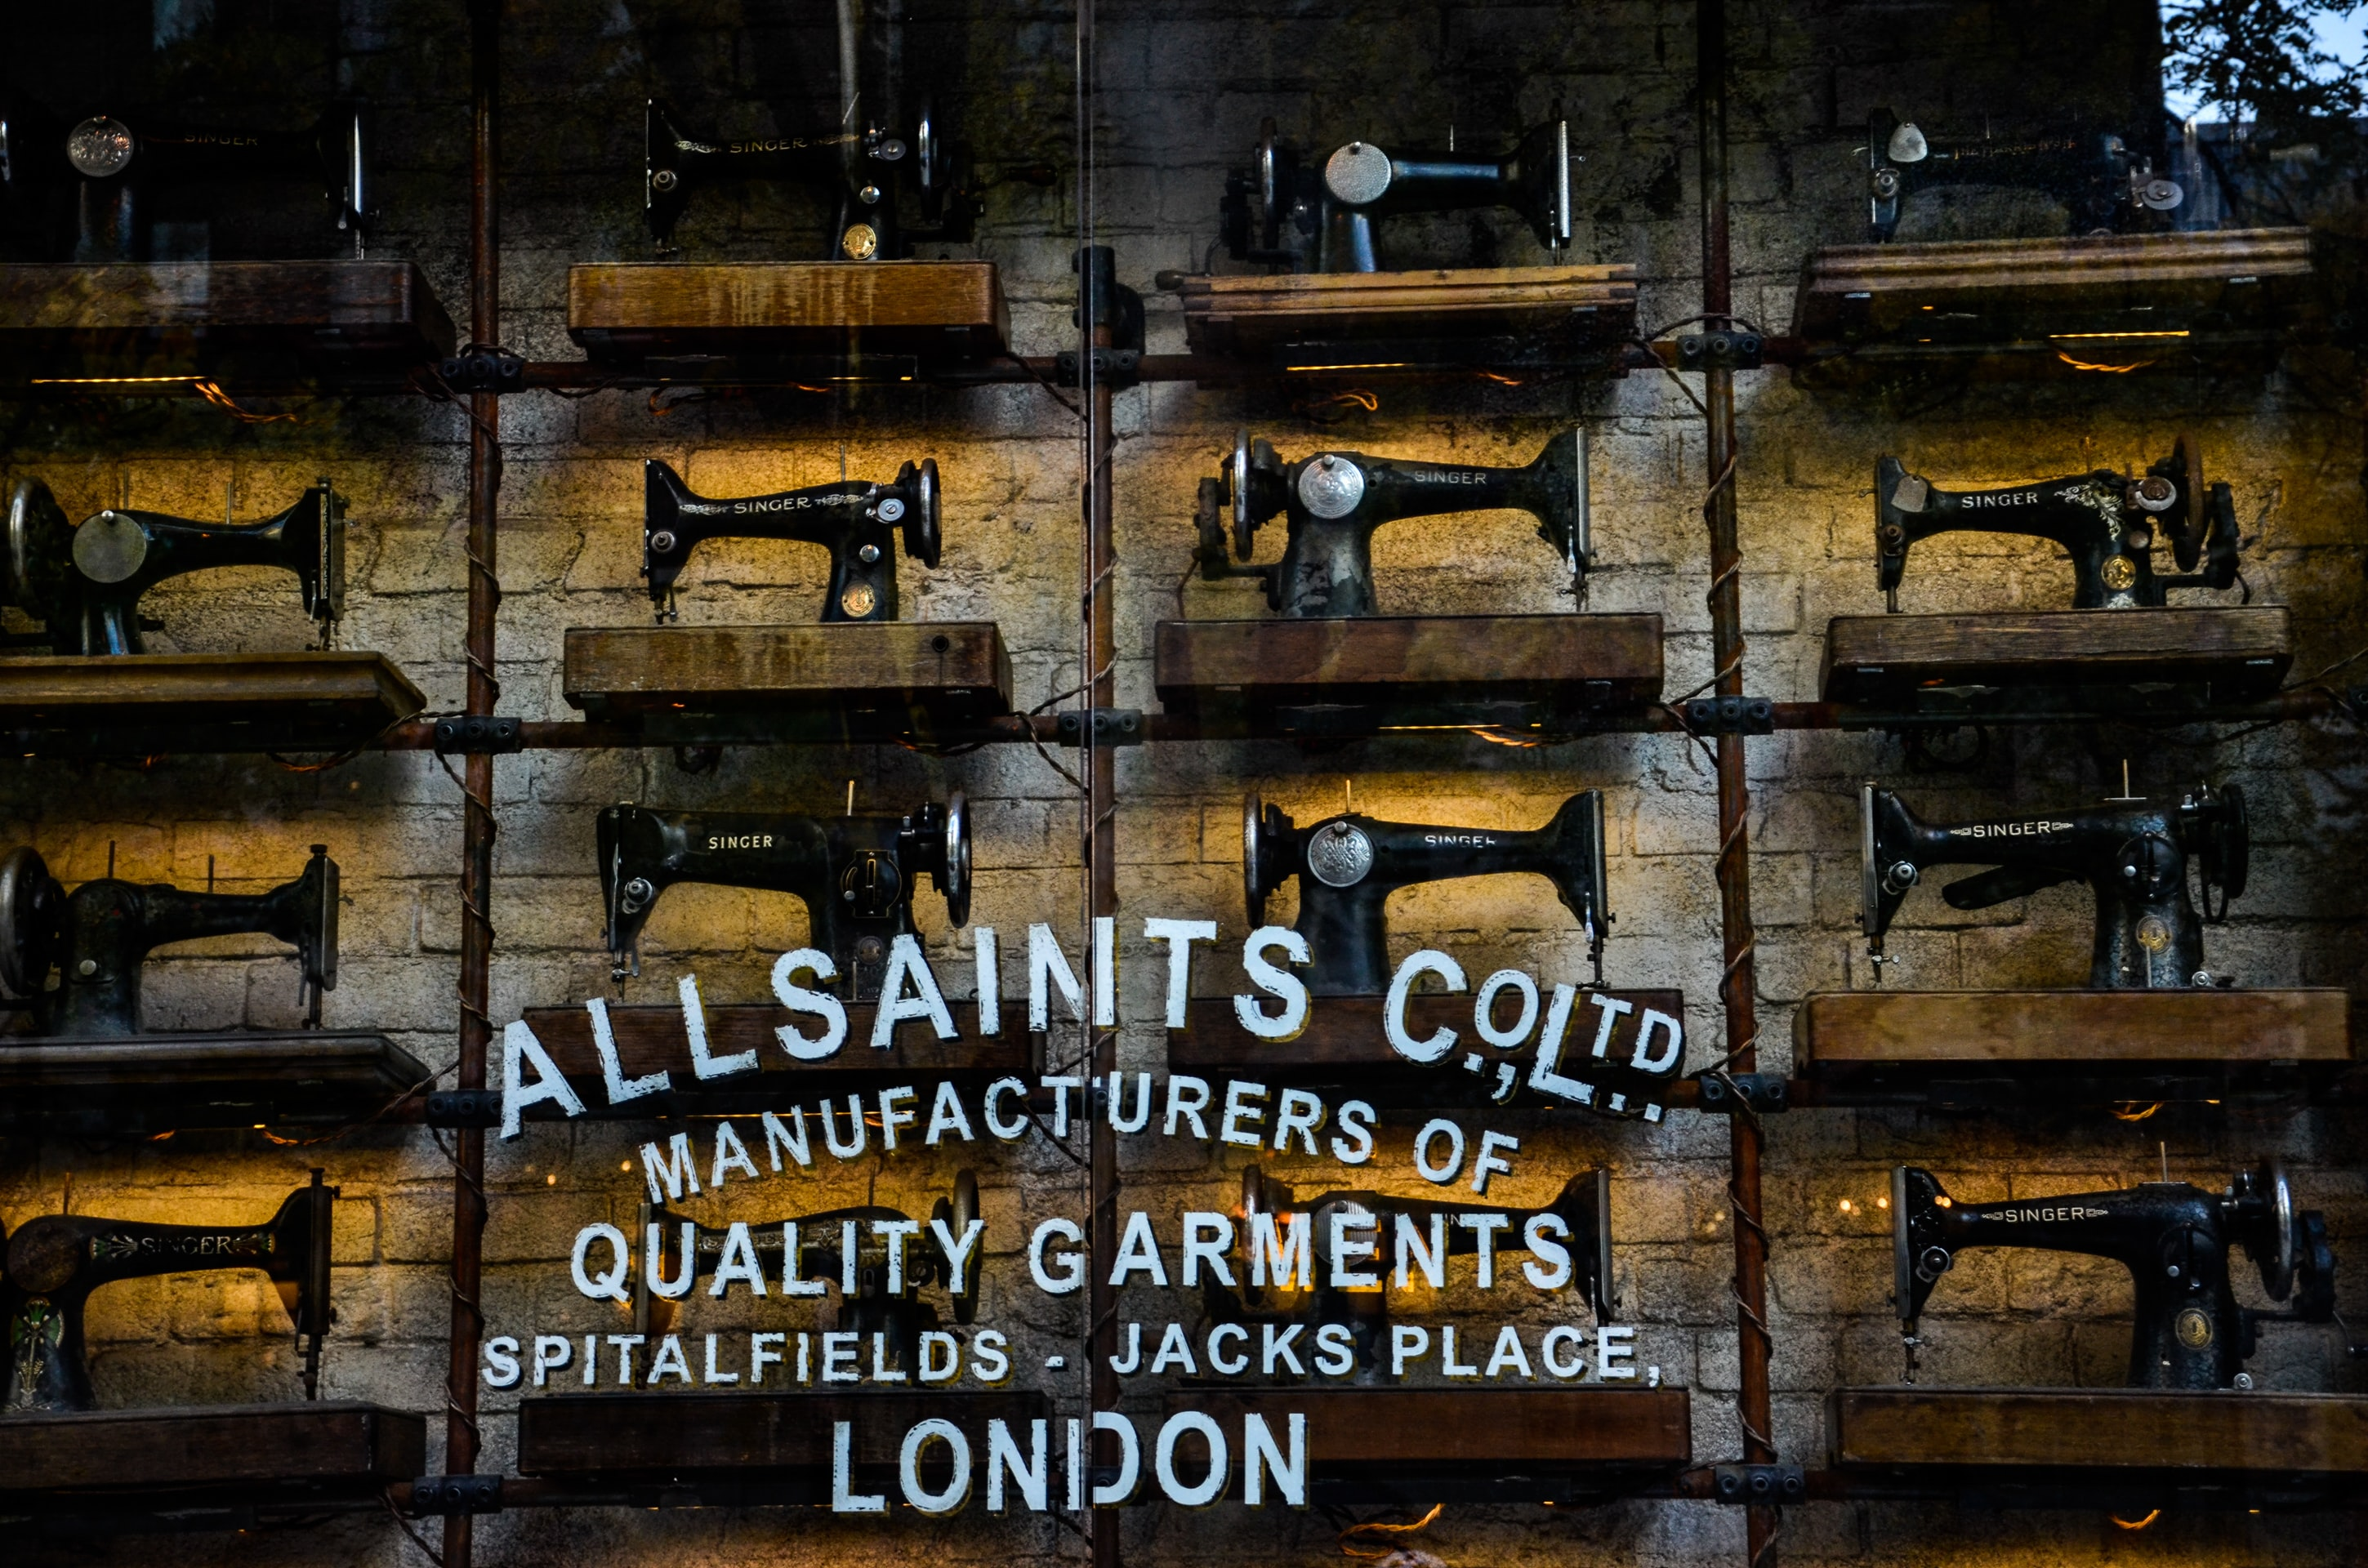 All Saints factory